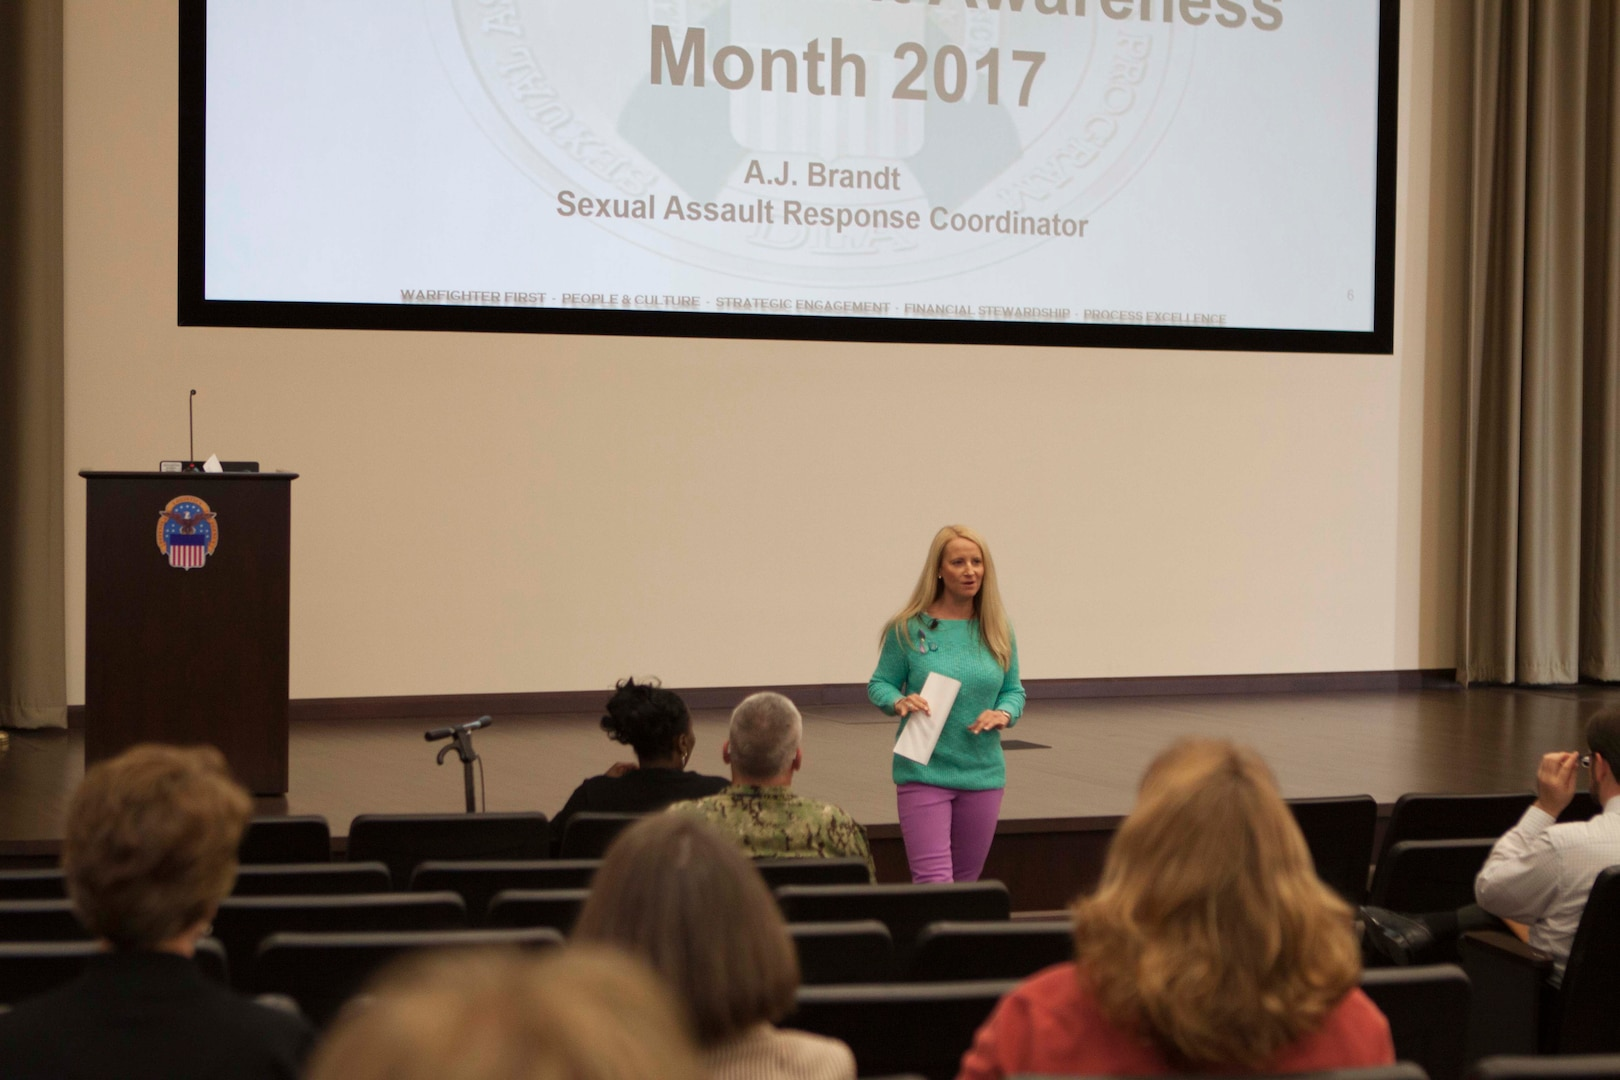 DLA Distribution's Multicultural Committee hosted a session with one of Distributions Sexual Assault Response Coordinator's, A.J. Brandt on April 12.